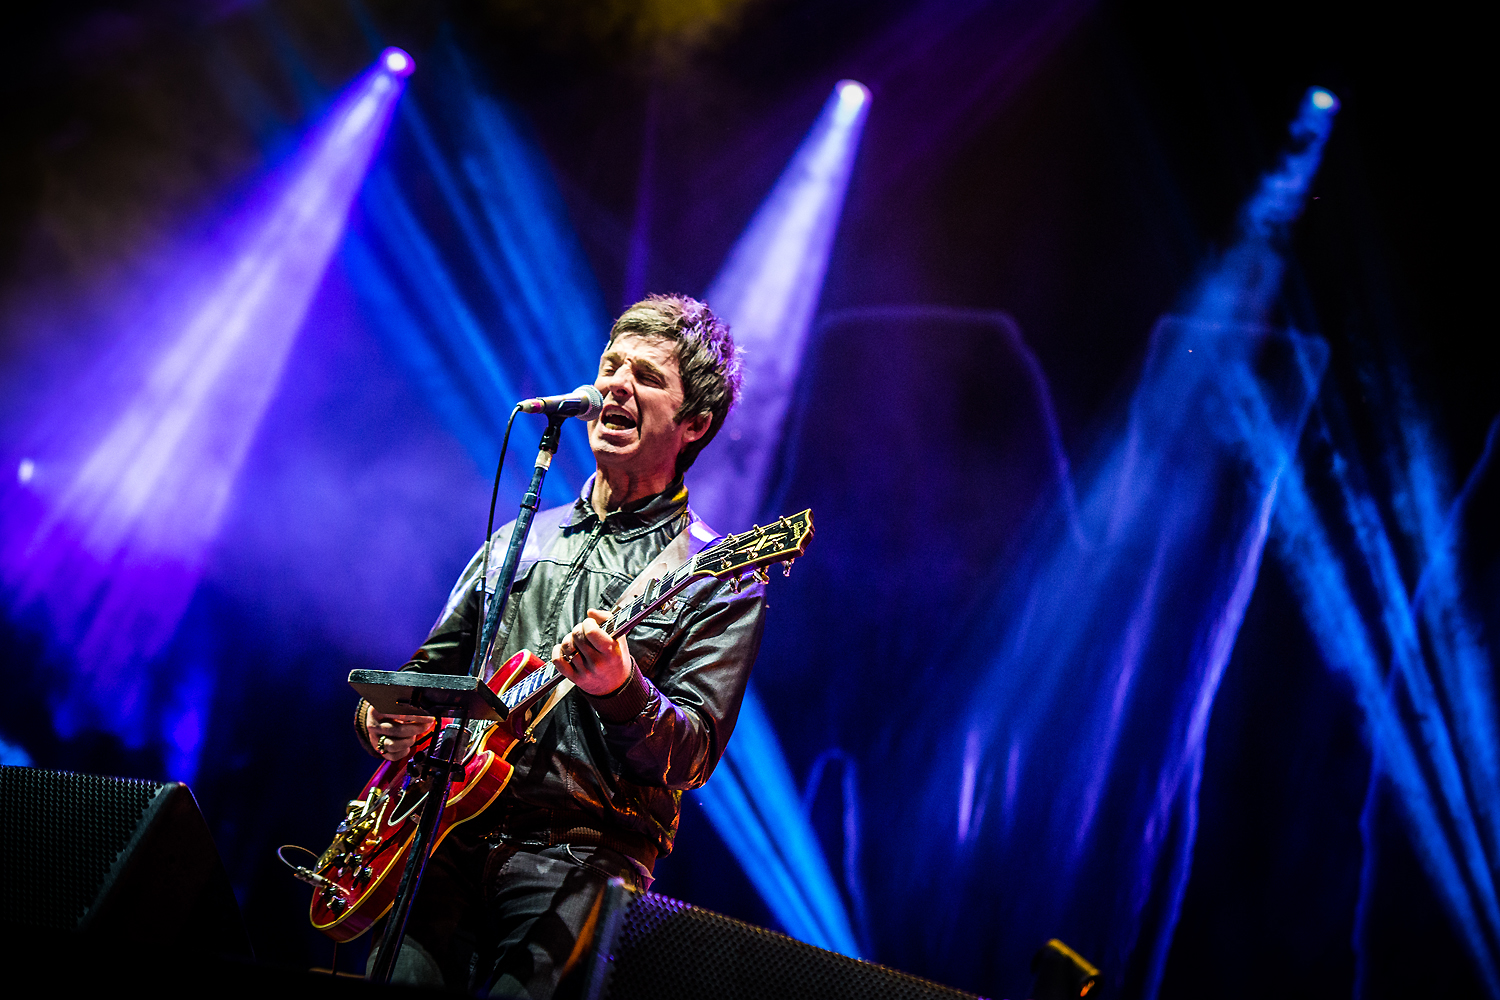 BKS 693 - Noel Gallagher's High Flying Birds